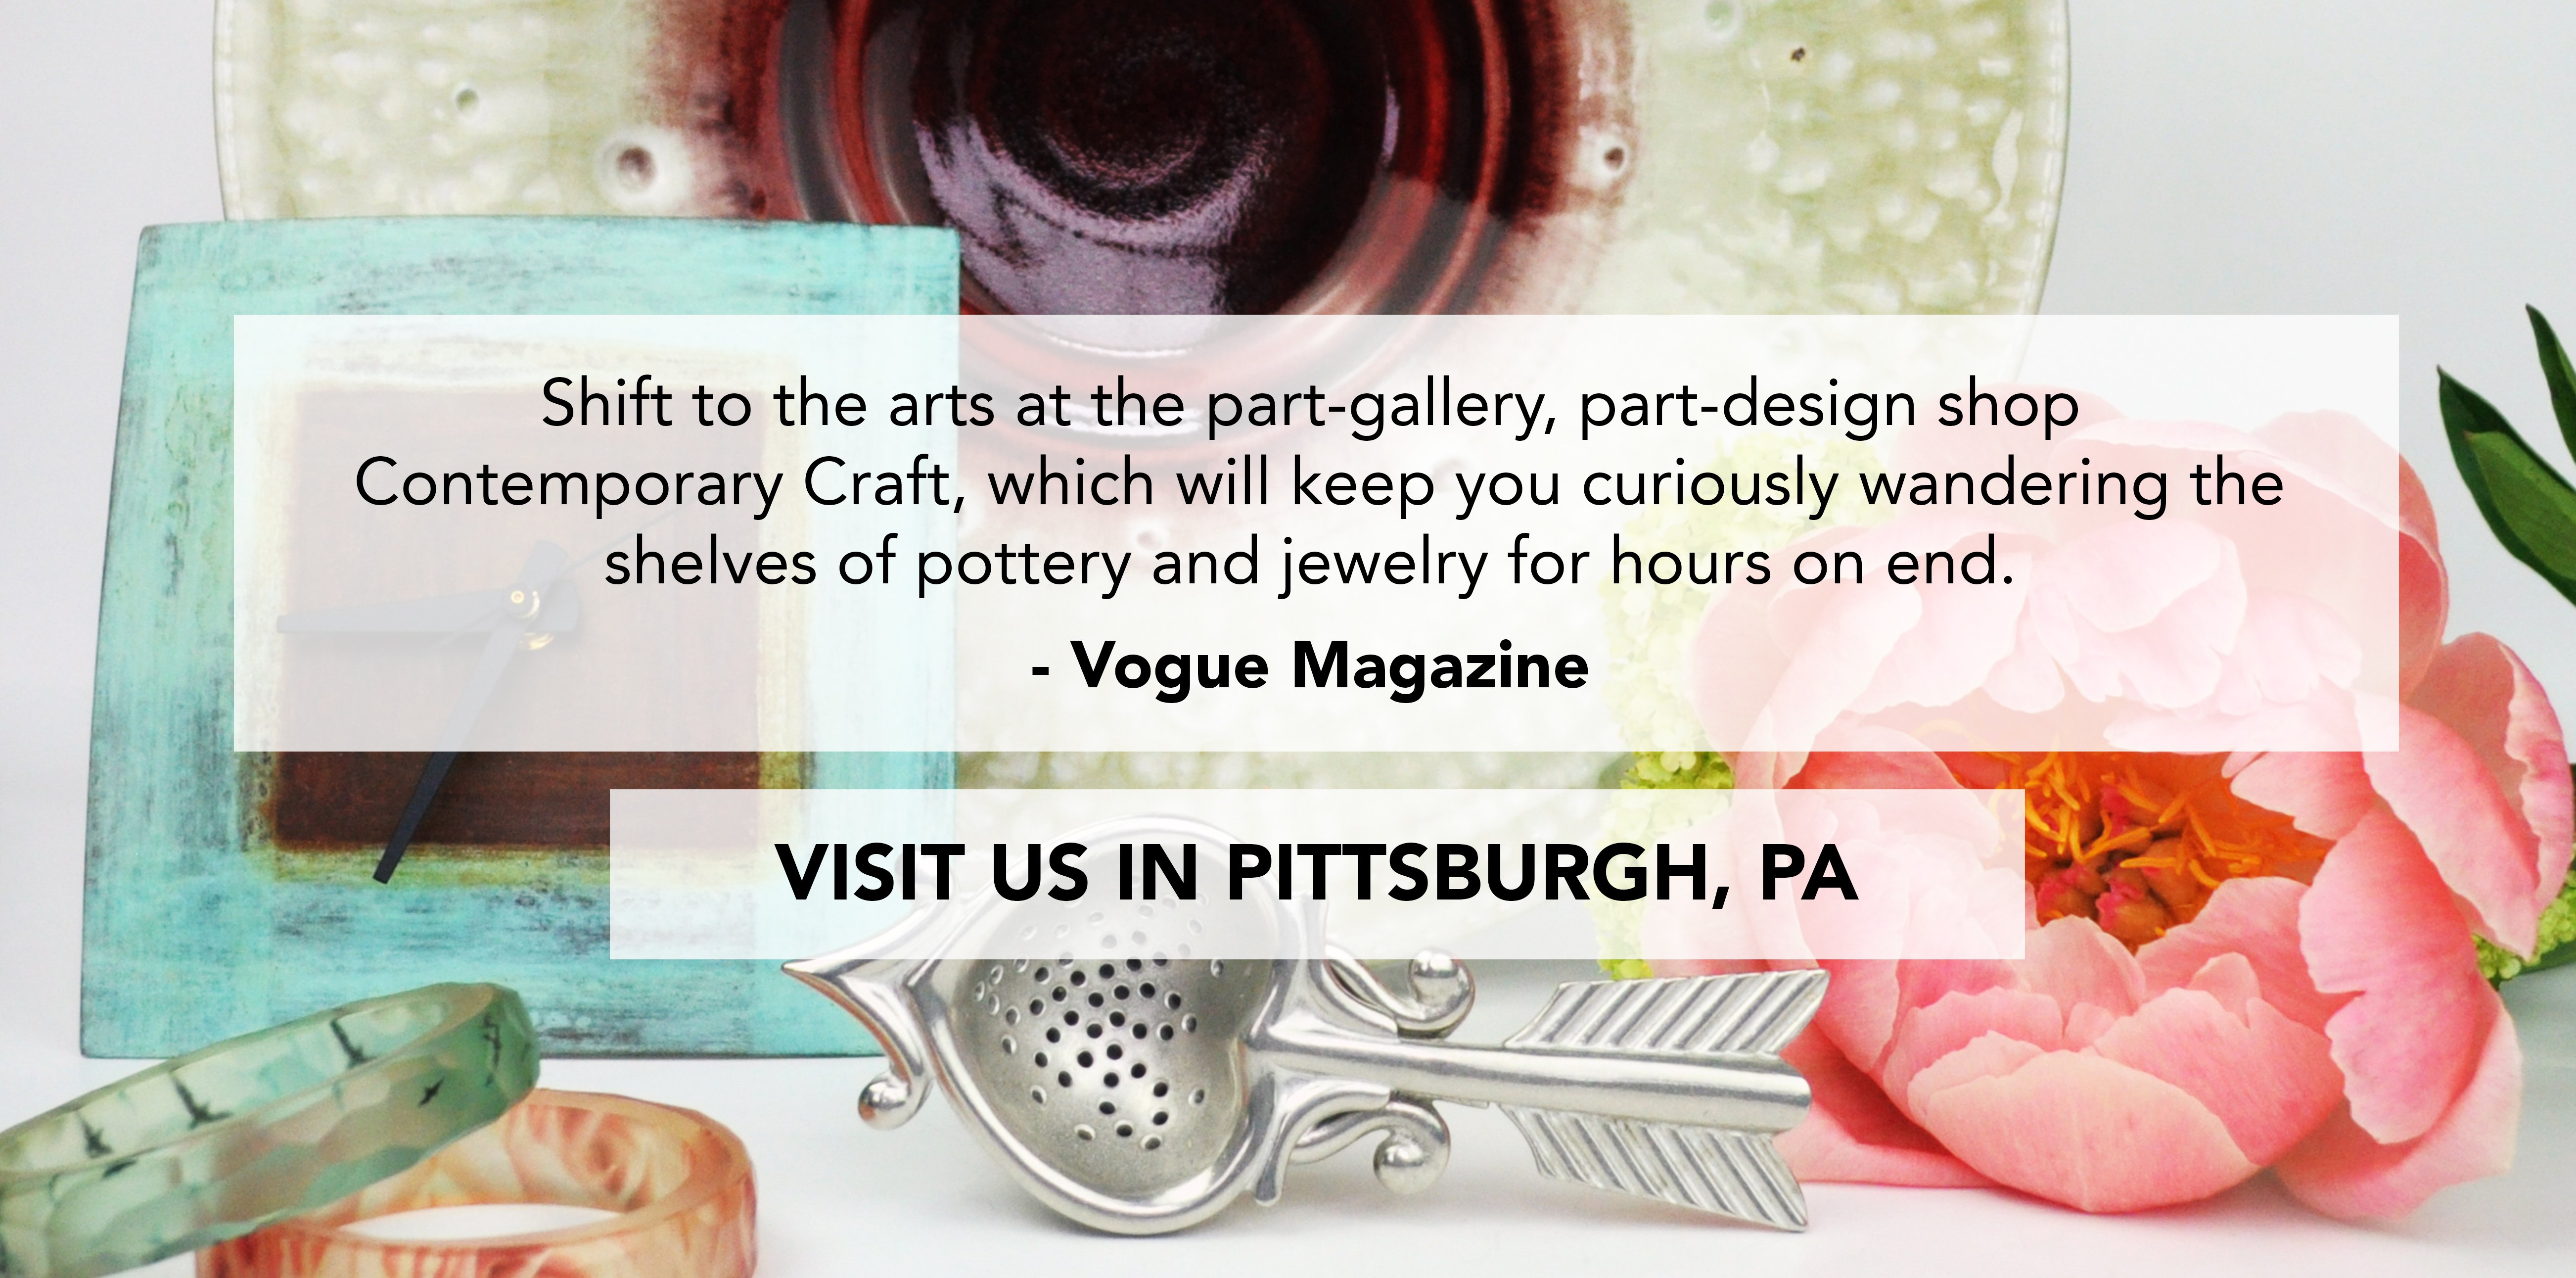 Visit Contemporary Craft in Pittsburgh, PA